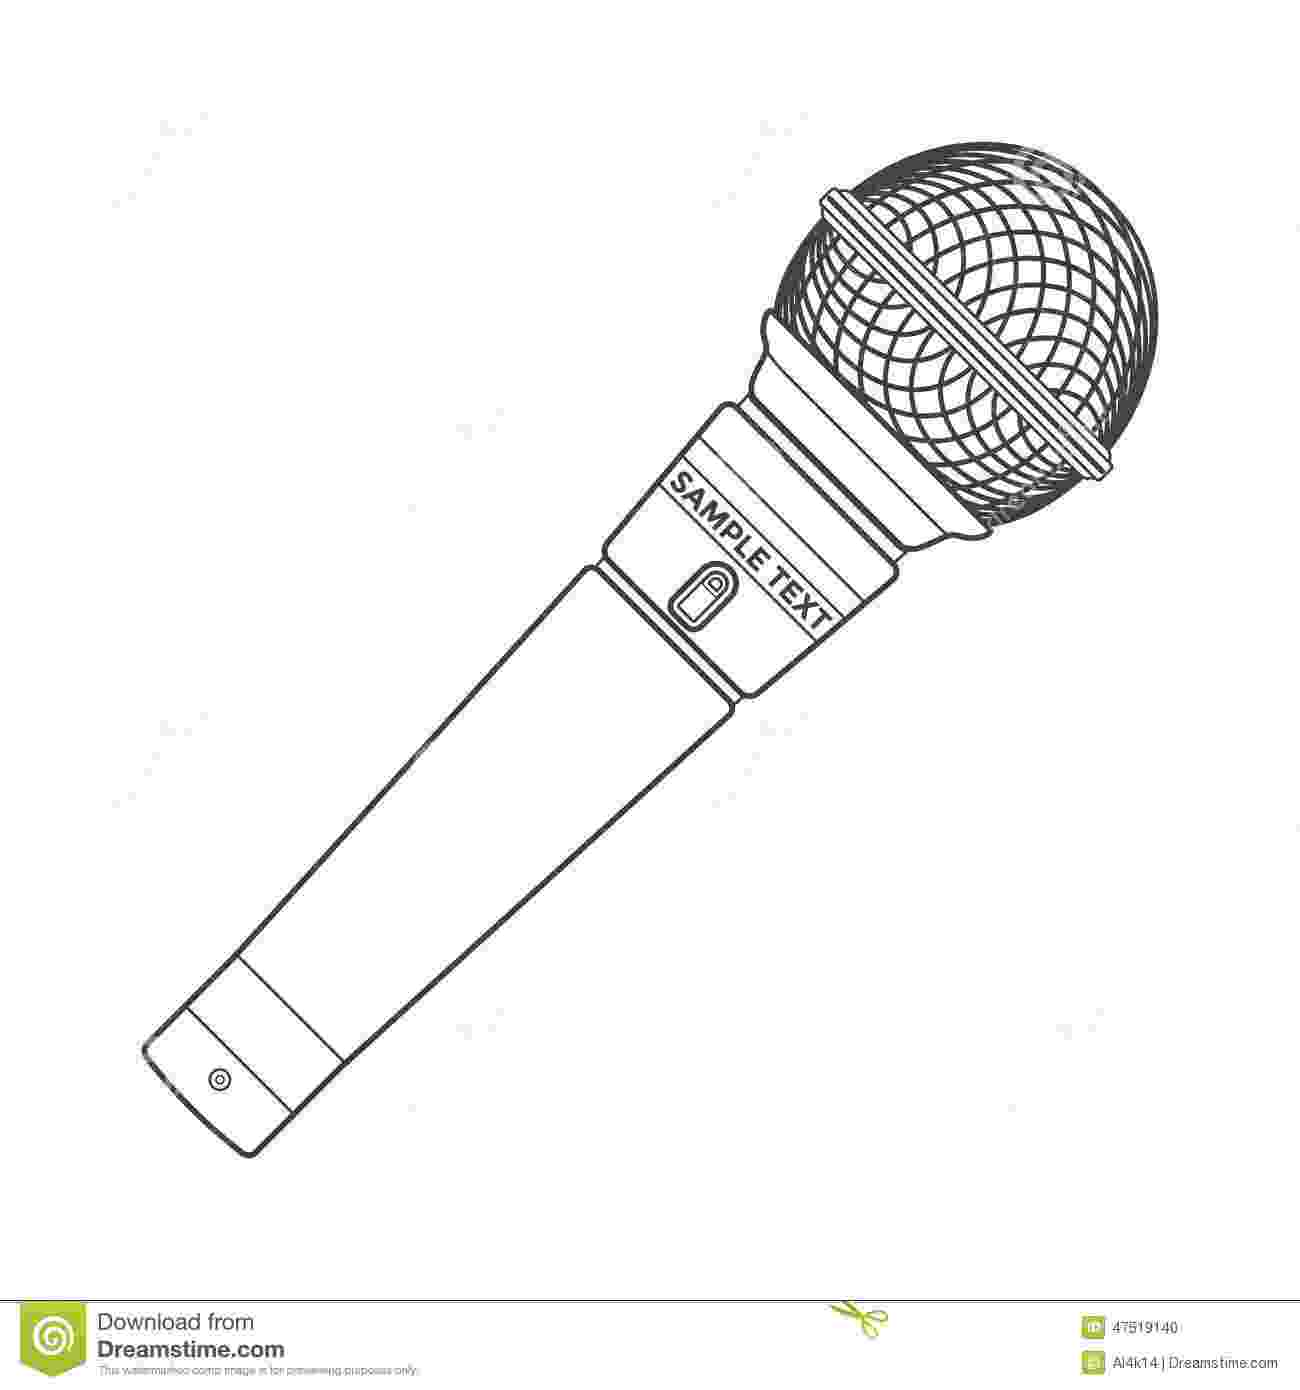 microphone coloring pages microphone coloring pages coloring pages to download and pages coloring microphone